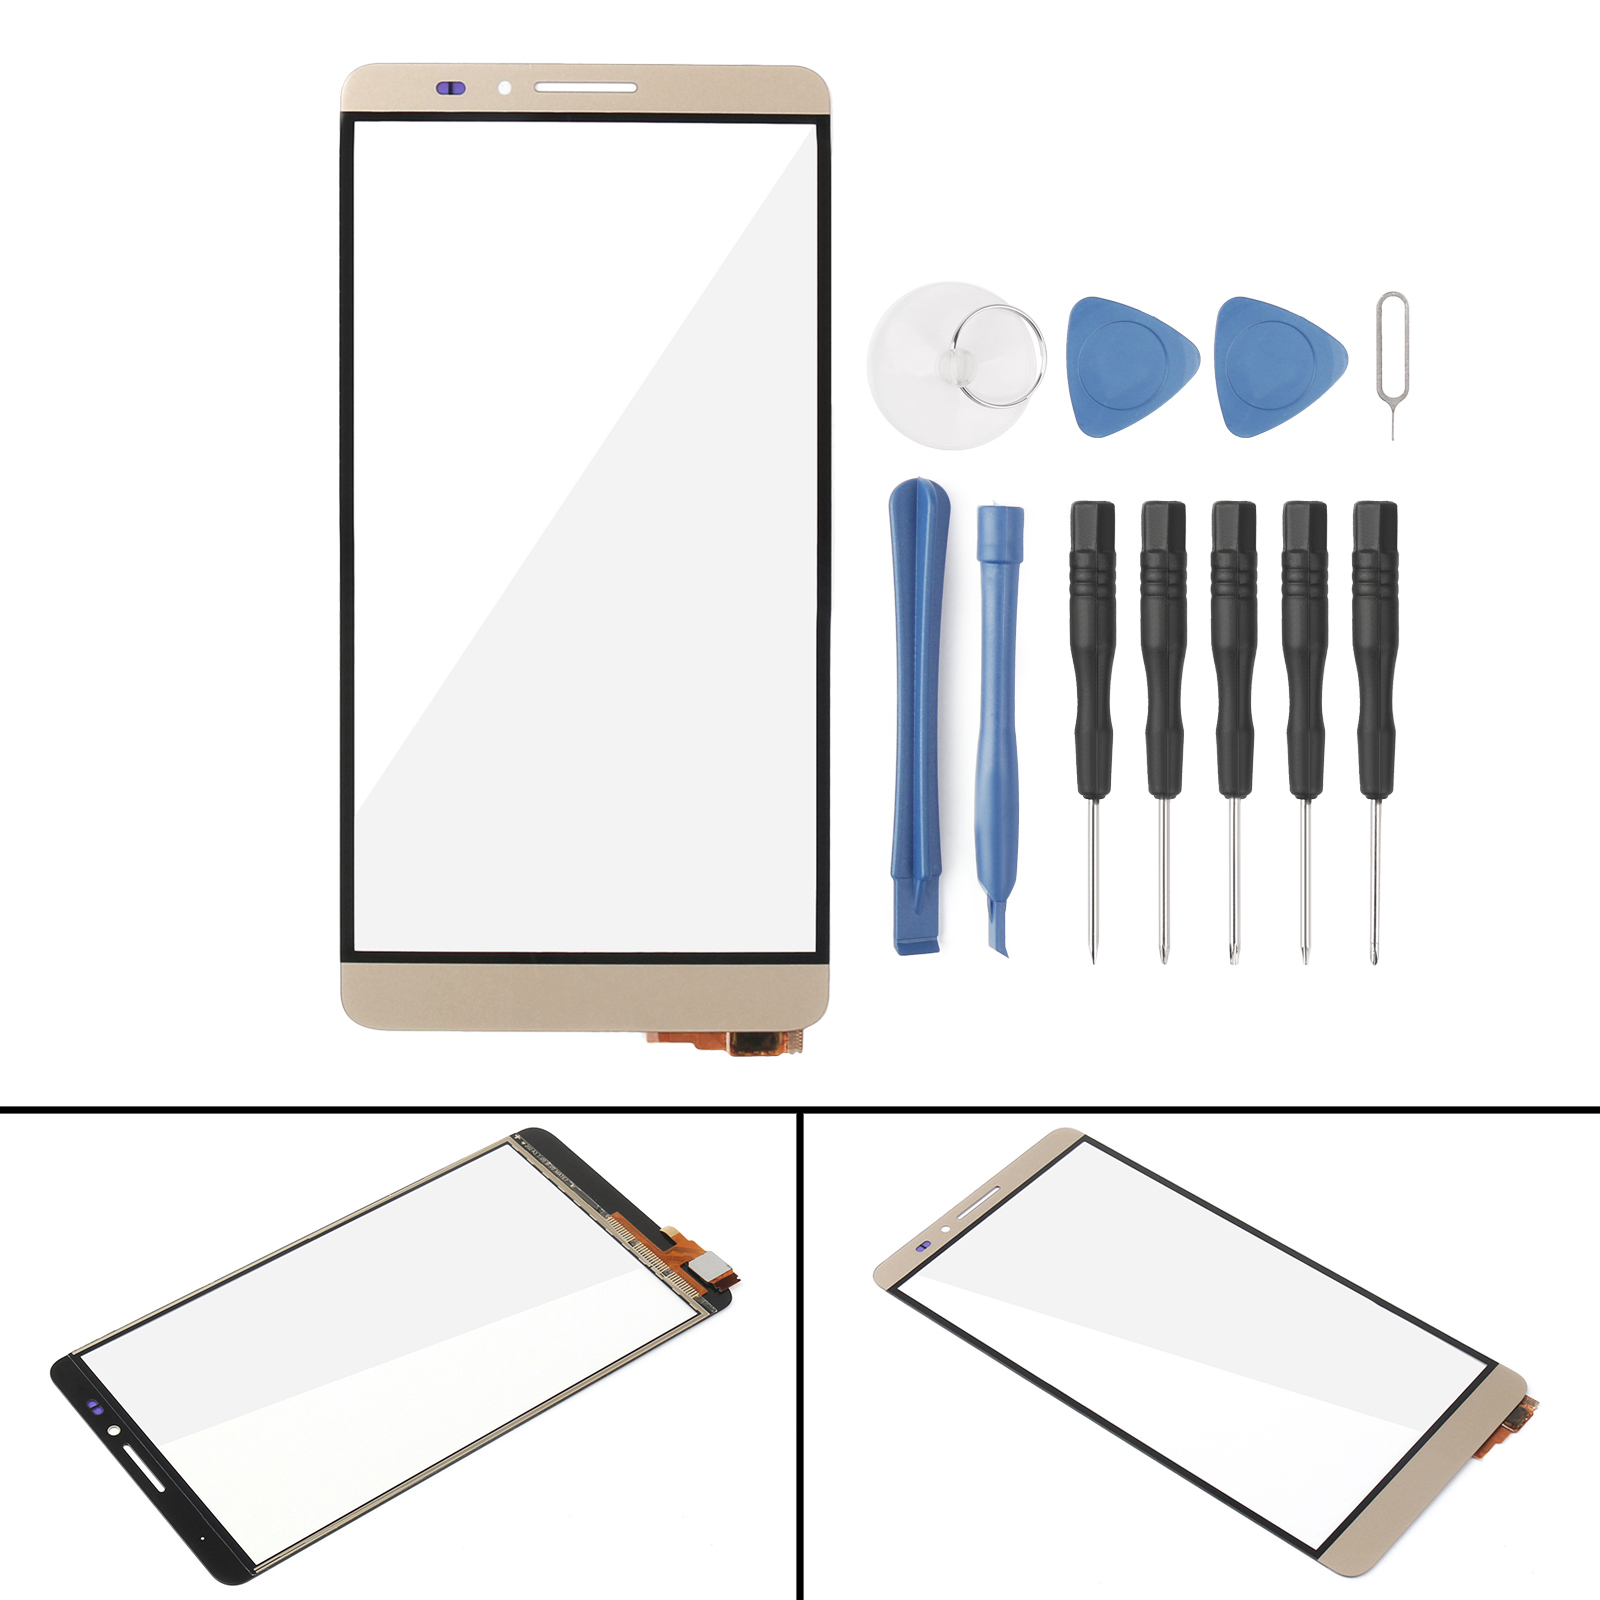 Areyourshop LCD Display Touch Screen Digitizer Replacement Assembly For Huawei Mate 7 Black